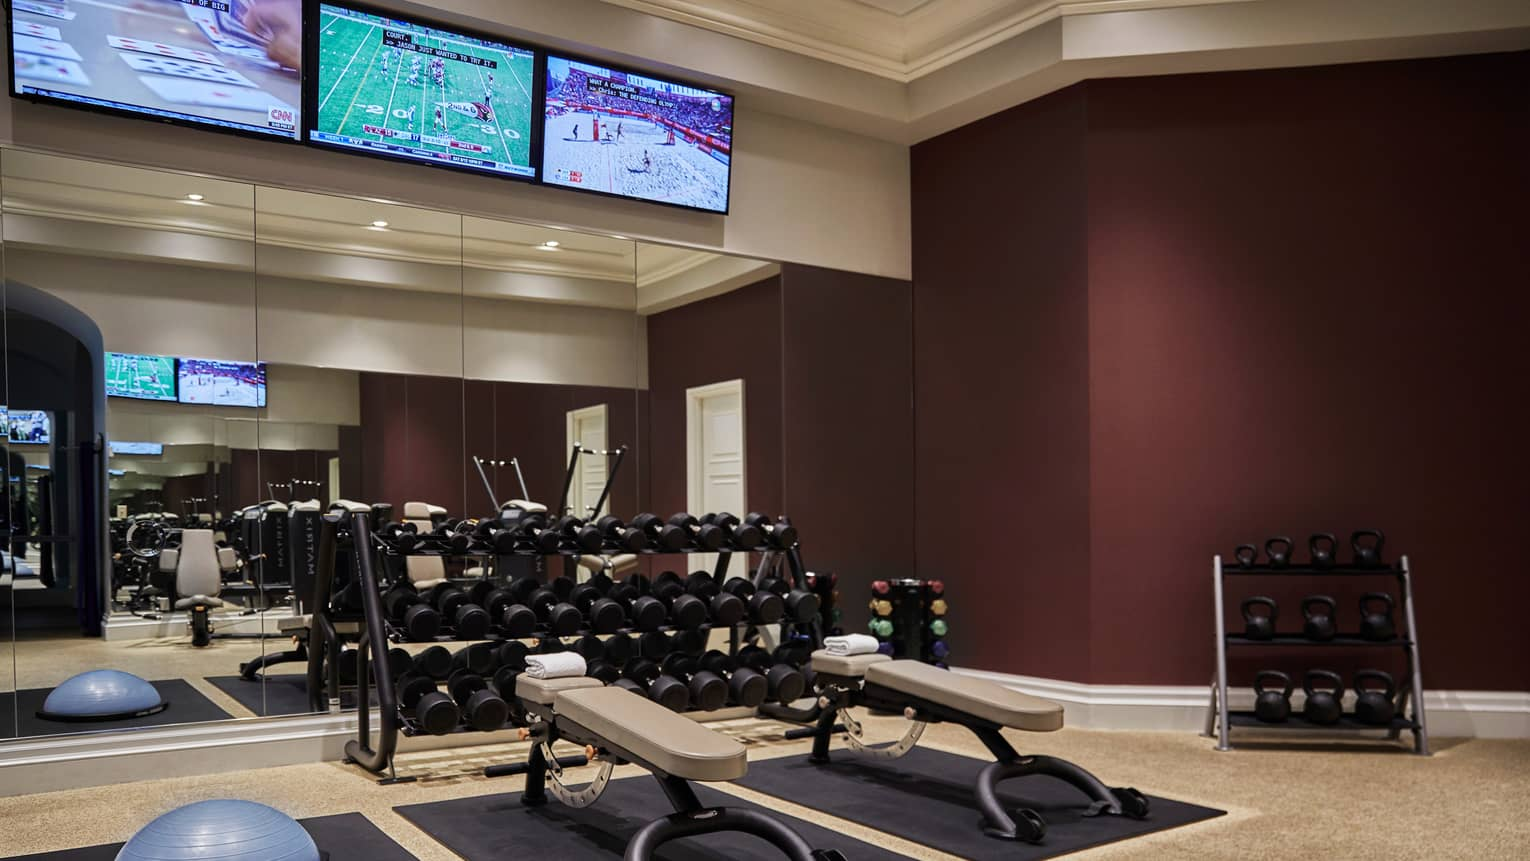 Racks of hand weights, kettlebells by Fitness Centre mirror wall under TVs